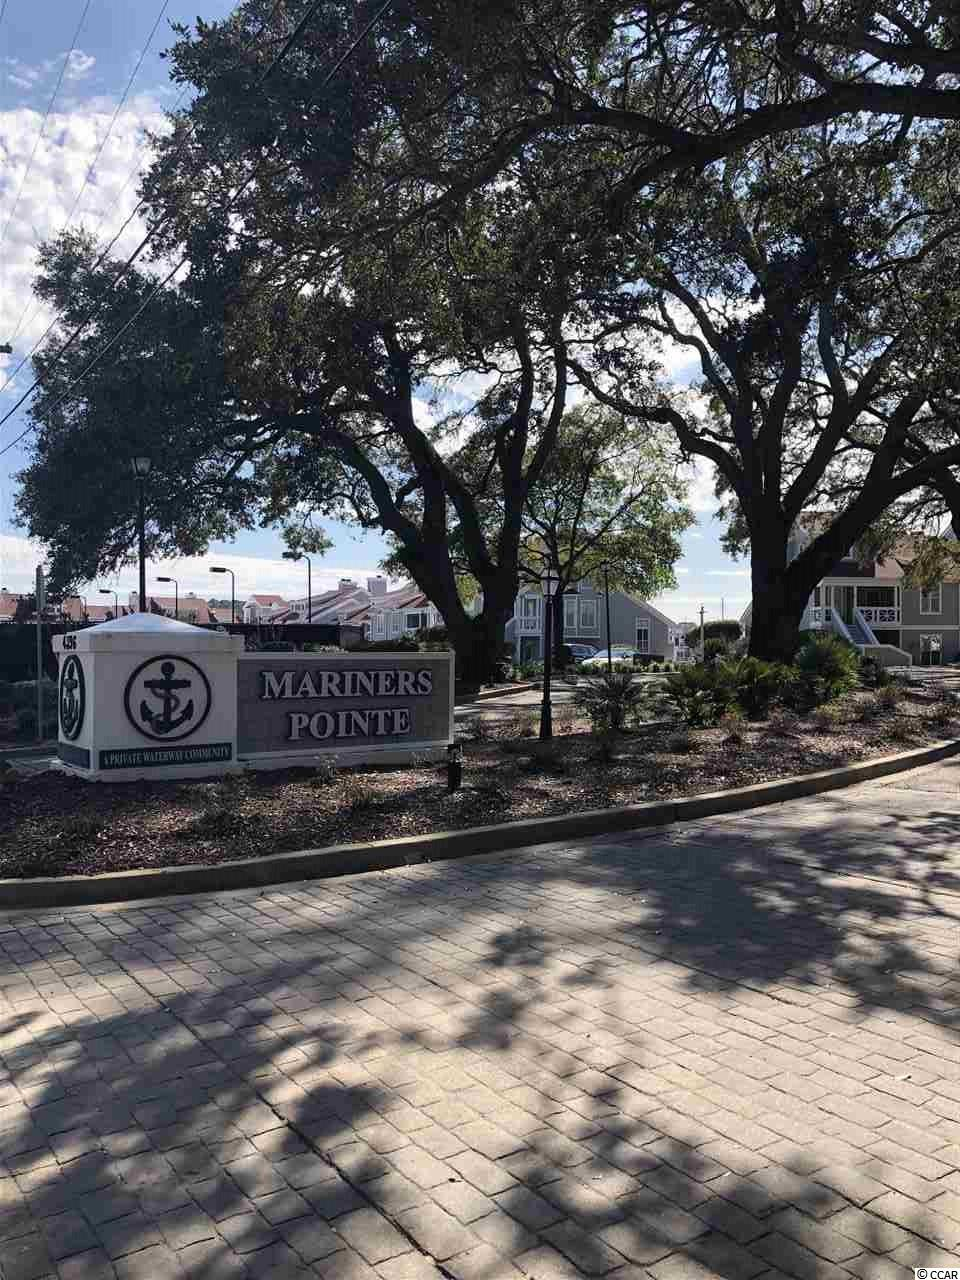 Mariner's Pointe is a beautiful and quaint community that sits right off the Intracoastal Waterway in Little River. Amenities include: on-site dock master, pump out station, storage bin, water, trash, showers, insurance, pool, hot tub, tennis court, basketball court, clubhouse with lounge room, and bar. Electricity is individually metered. Easy access to the Atlantic Ocean (approx. 3 miles). All measurements are approximate and not guaranteed. Buyer is responsible for verification.